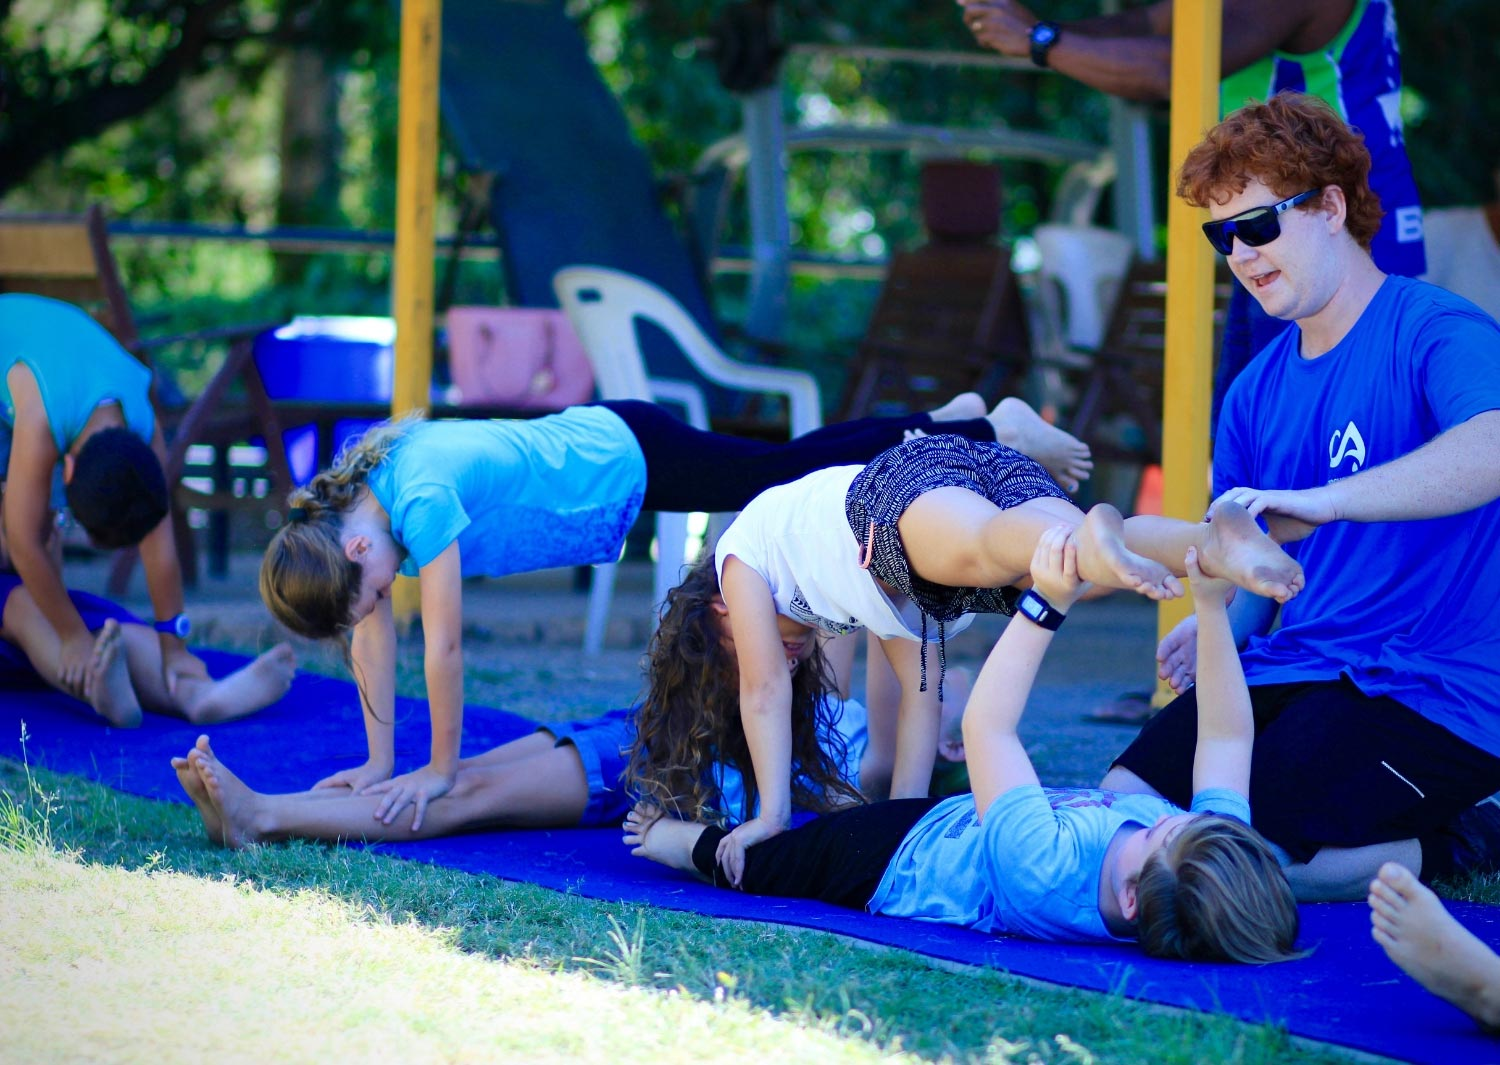 circus-arts-brisbane-sydney-flying-trapeze-mega-mix-circus-kids-school-holiday-activities-programs-classes-6